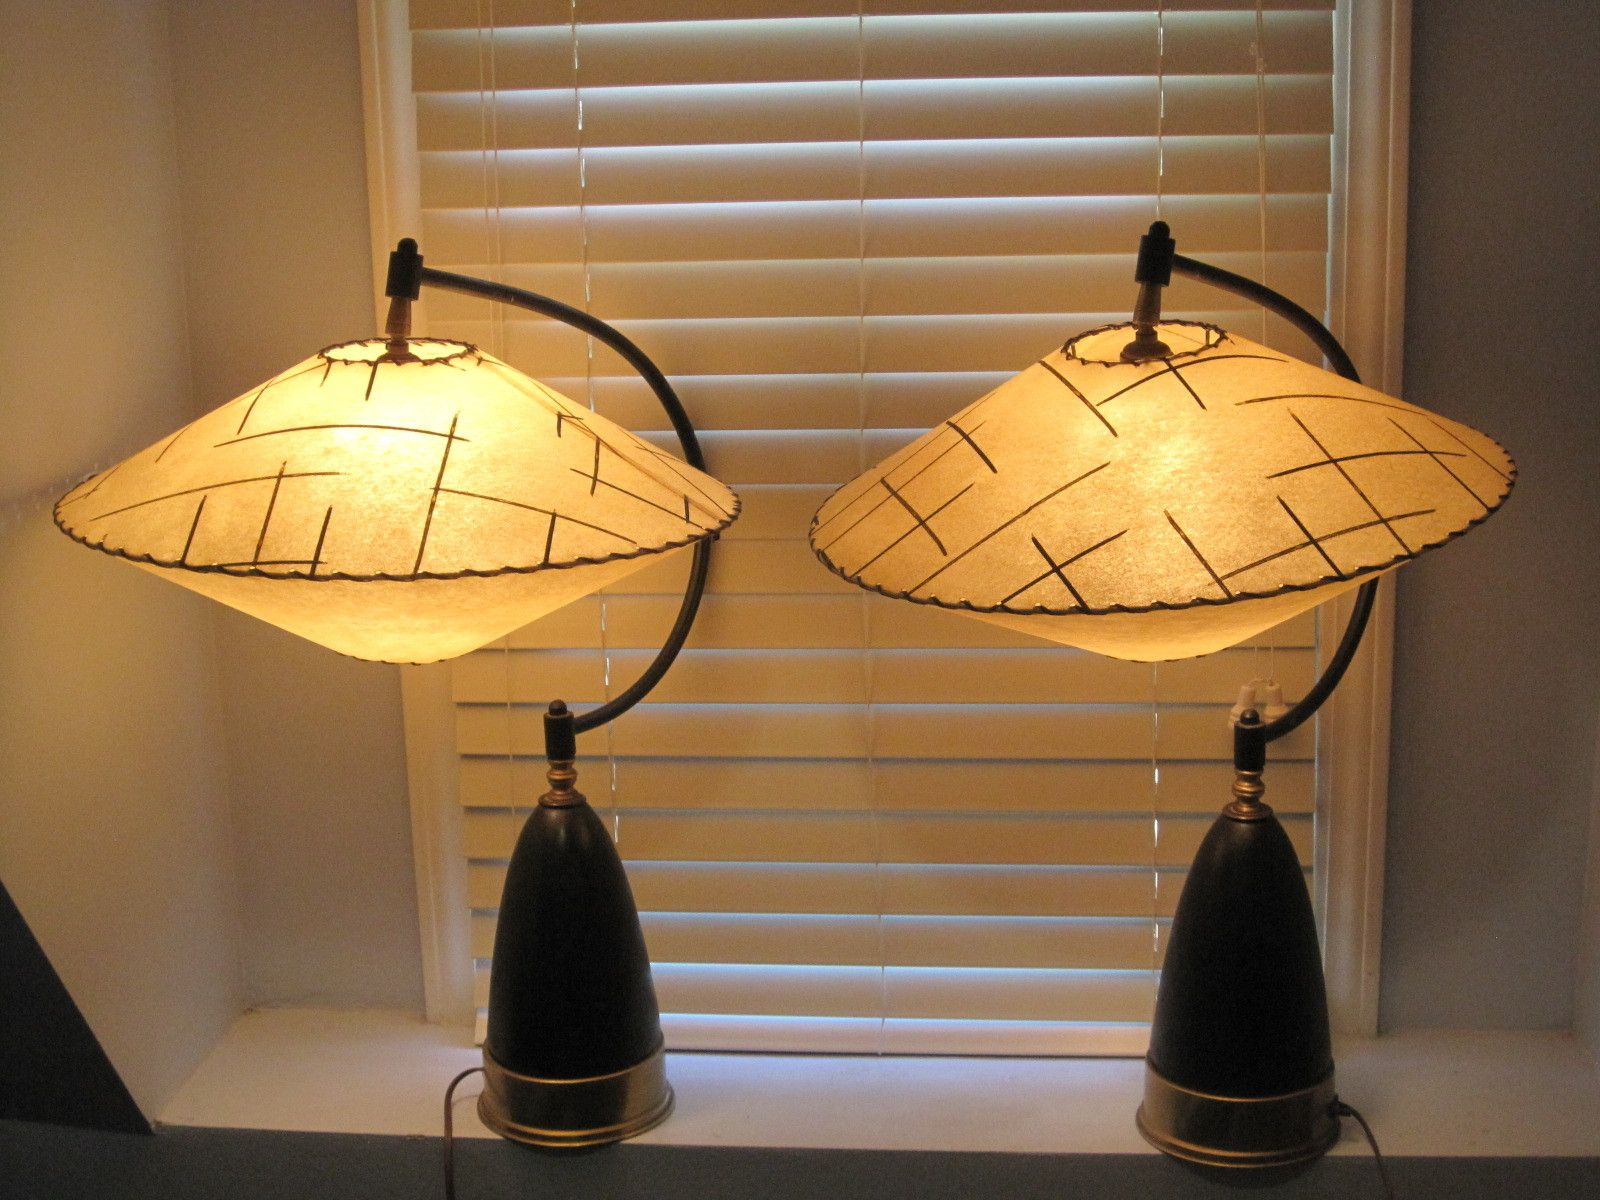 Vintage 50 S Retro Lamp Space Age Hanging Shades Rare And Unique Retro Lamp Mid Century Modern Lamps Mid Century Lamp